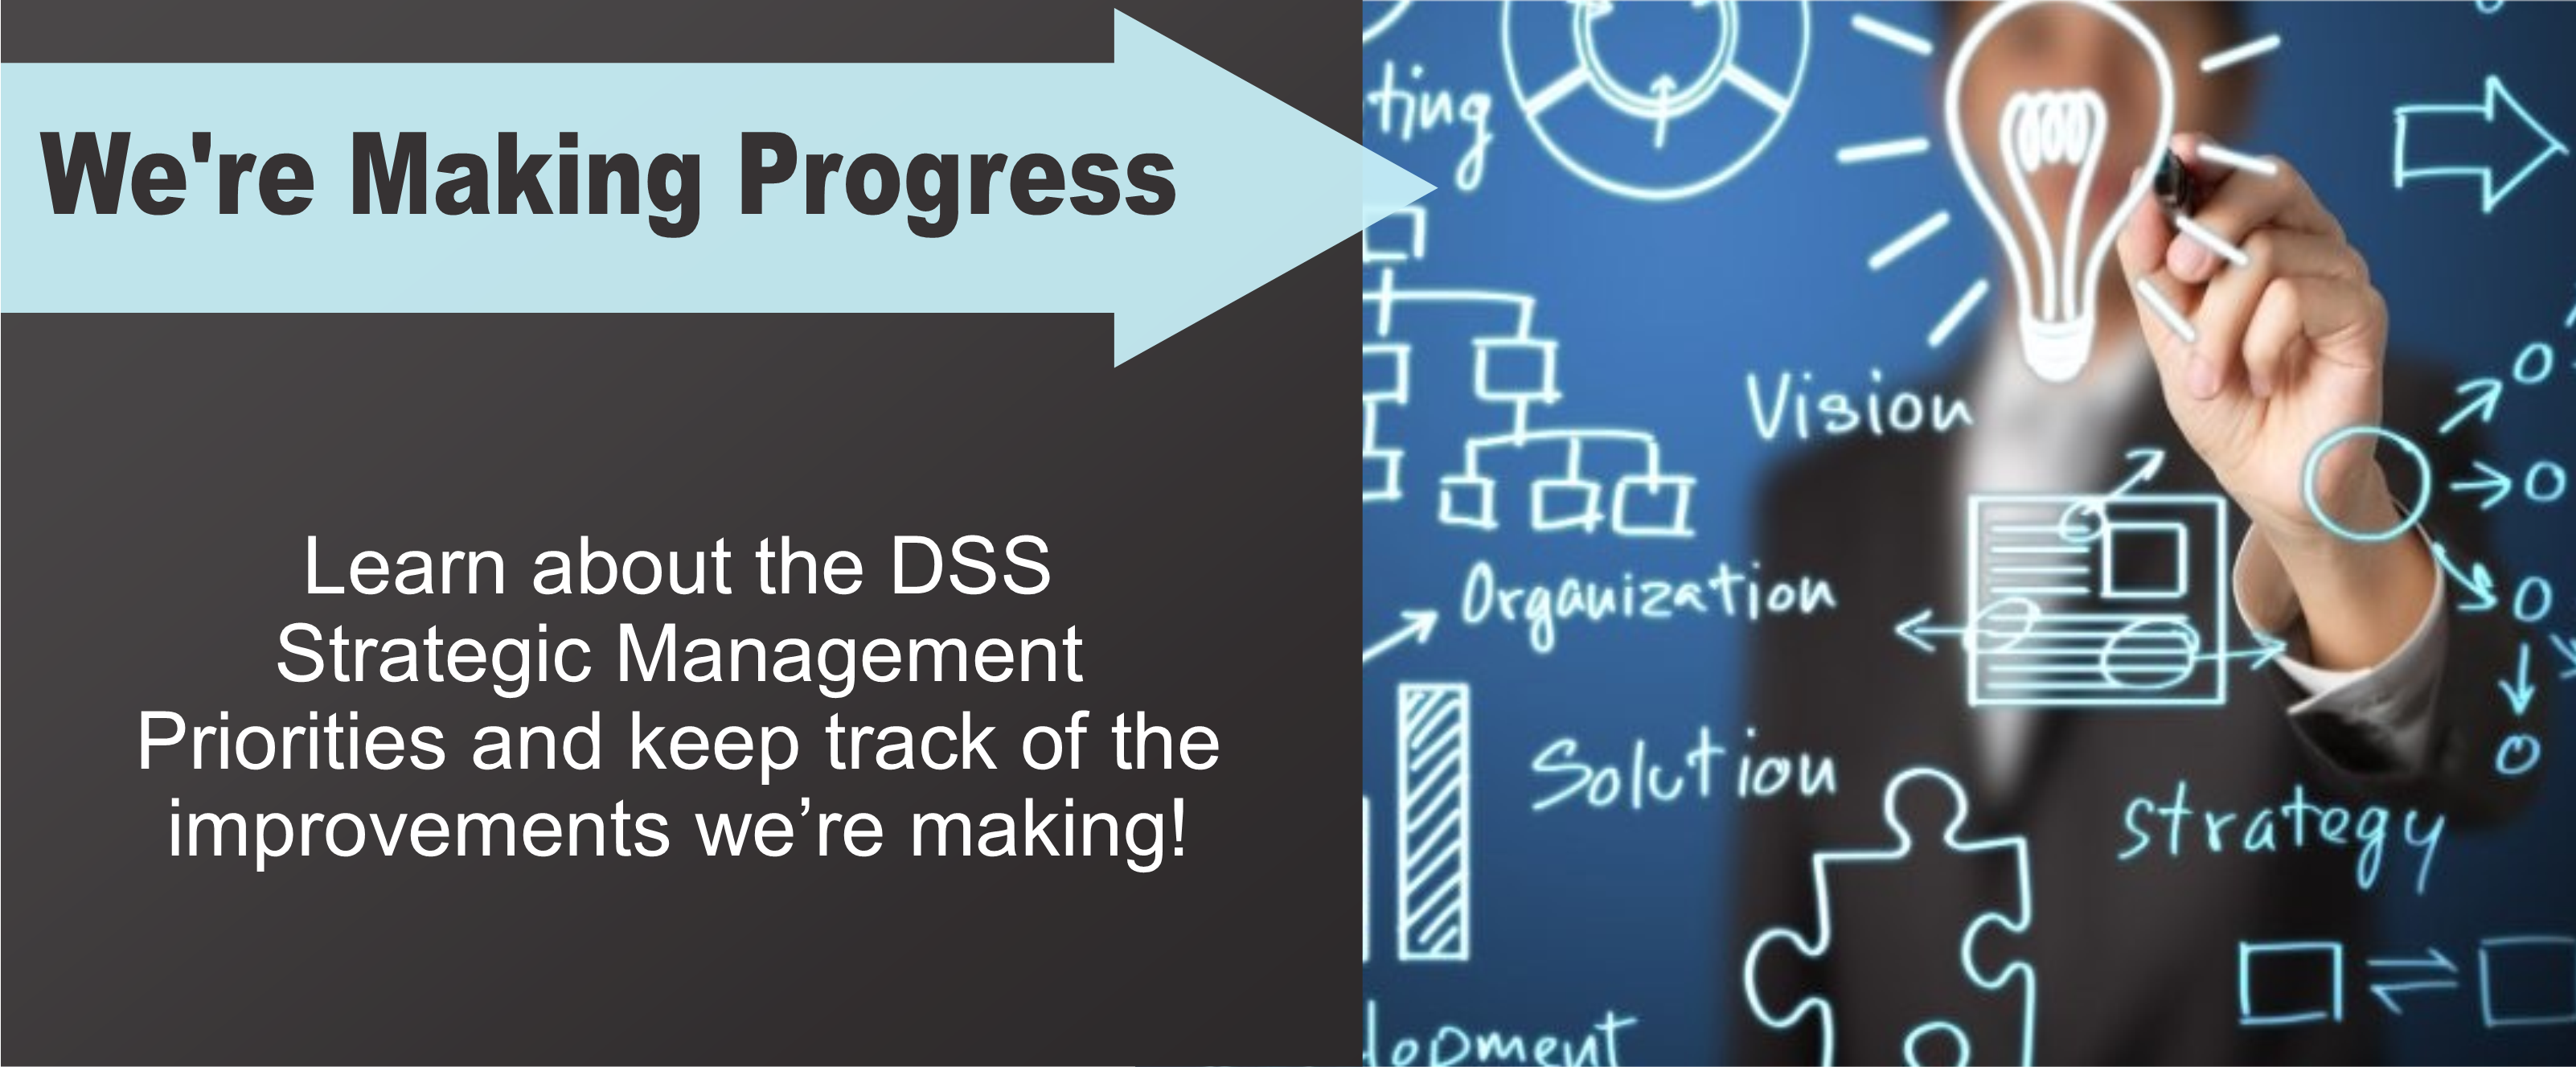 DSS strategic Management Priorities